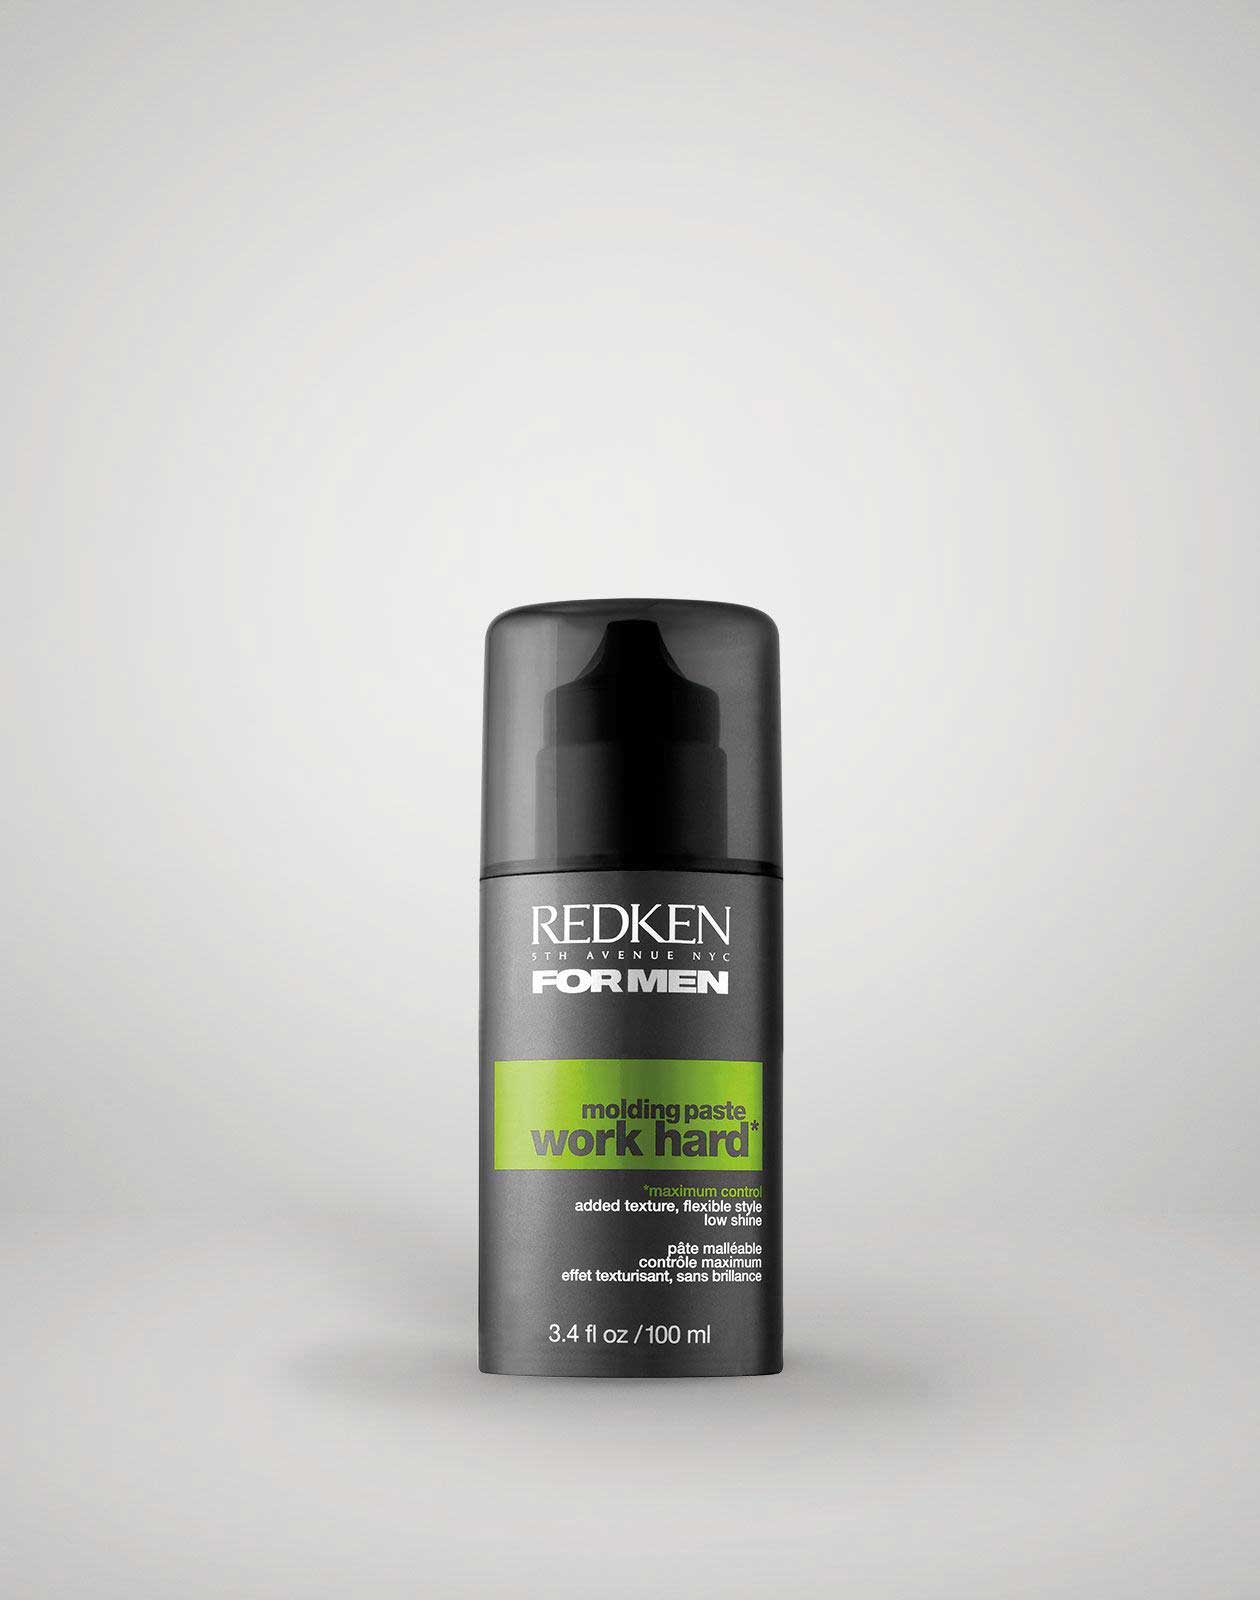 redken hair styling products